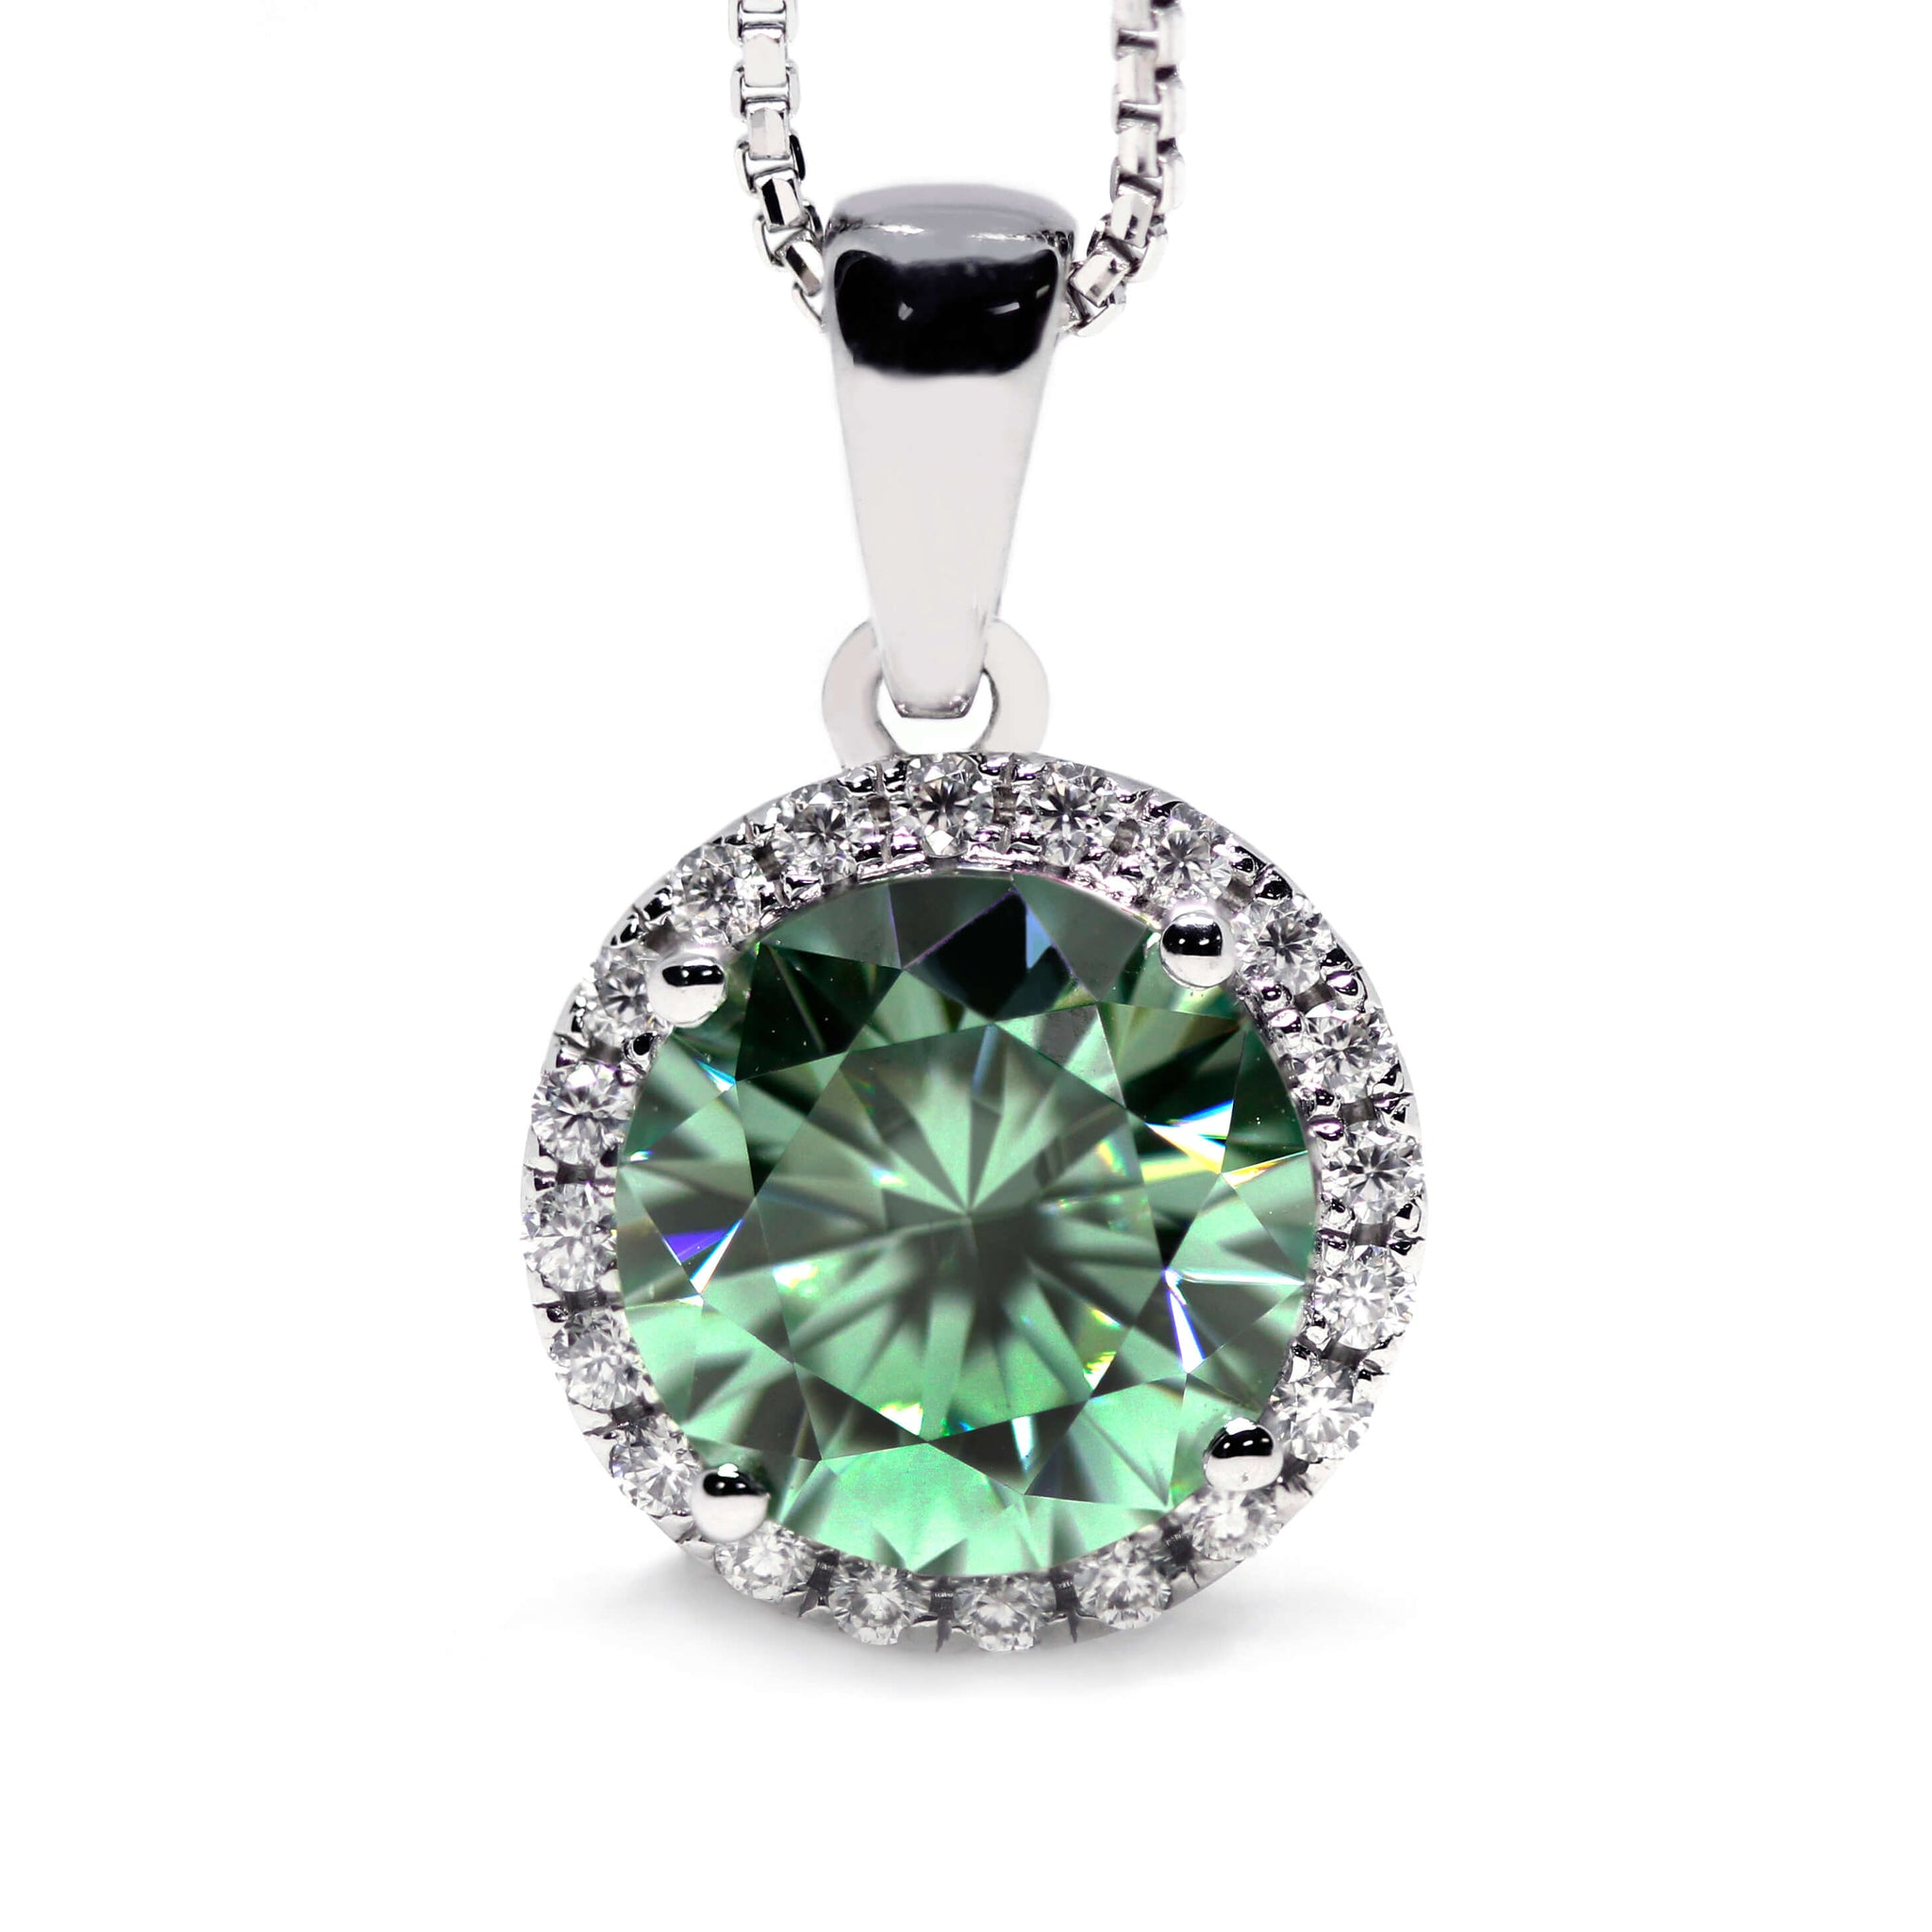 2 Carat Medium Green Moissanite Round Halo 18K Gold Pendant